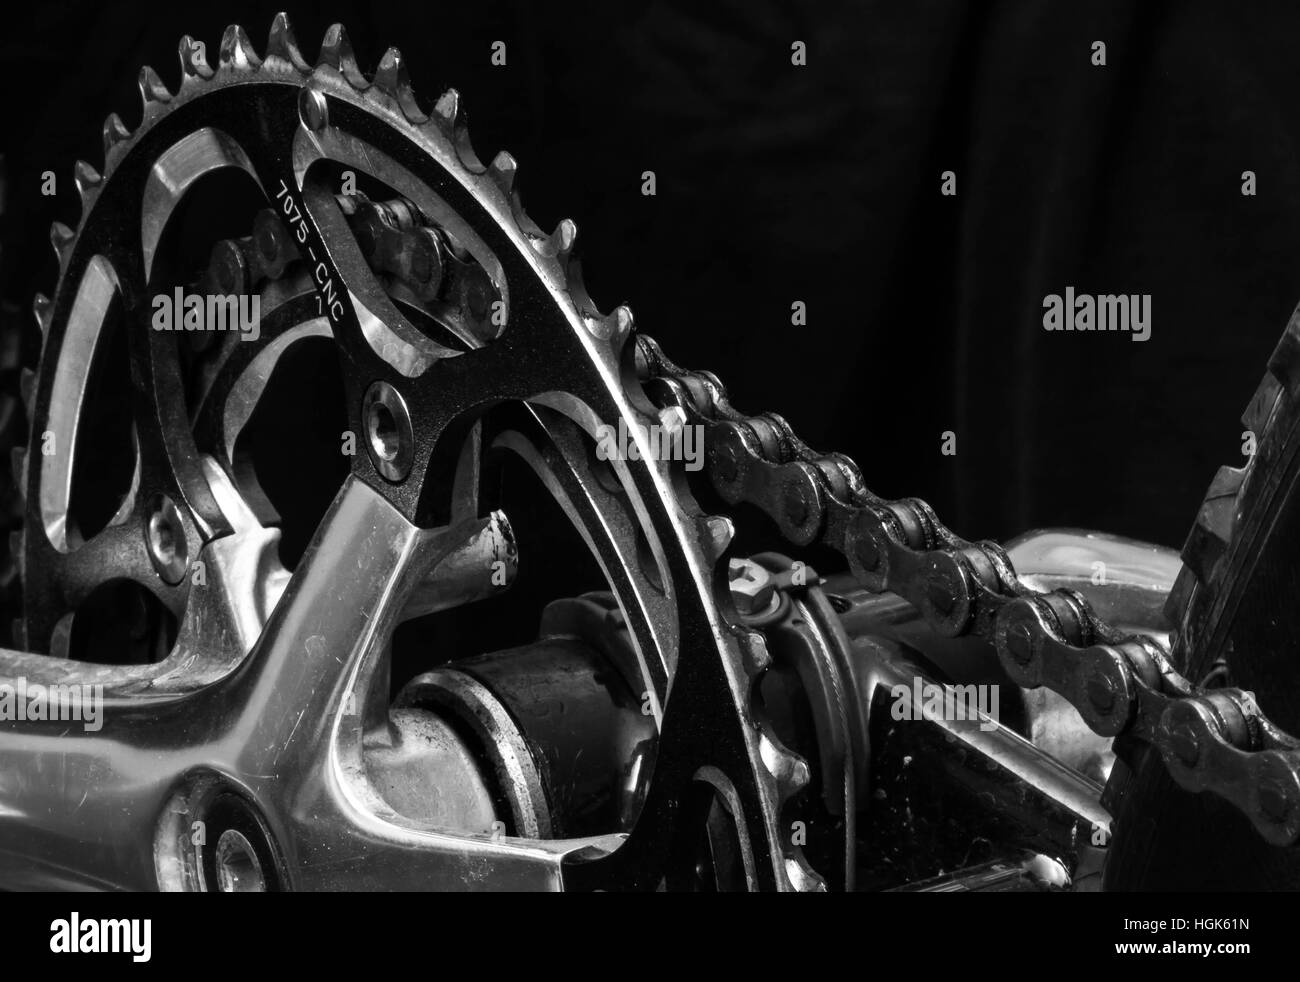 The Gears of Hard Work - Stock Image